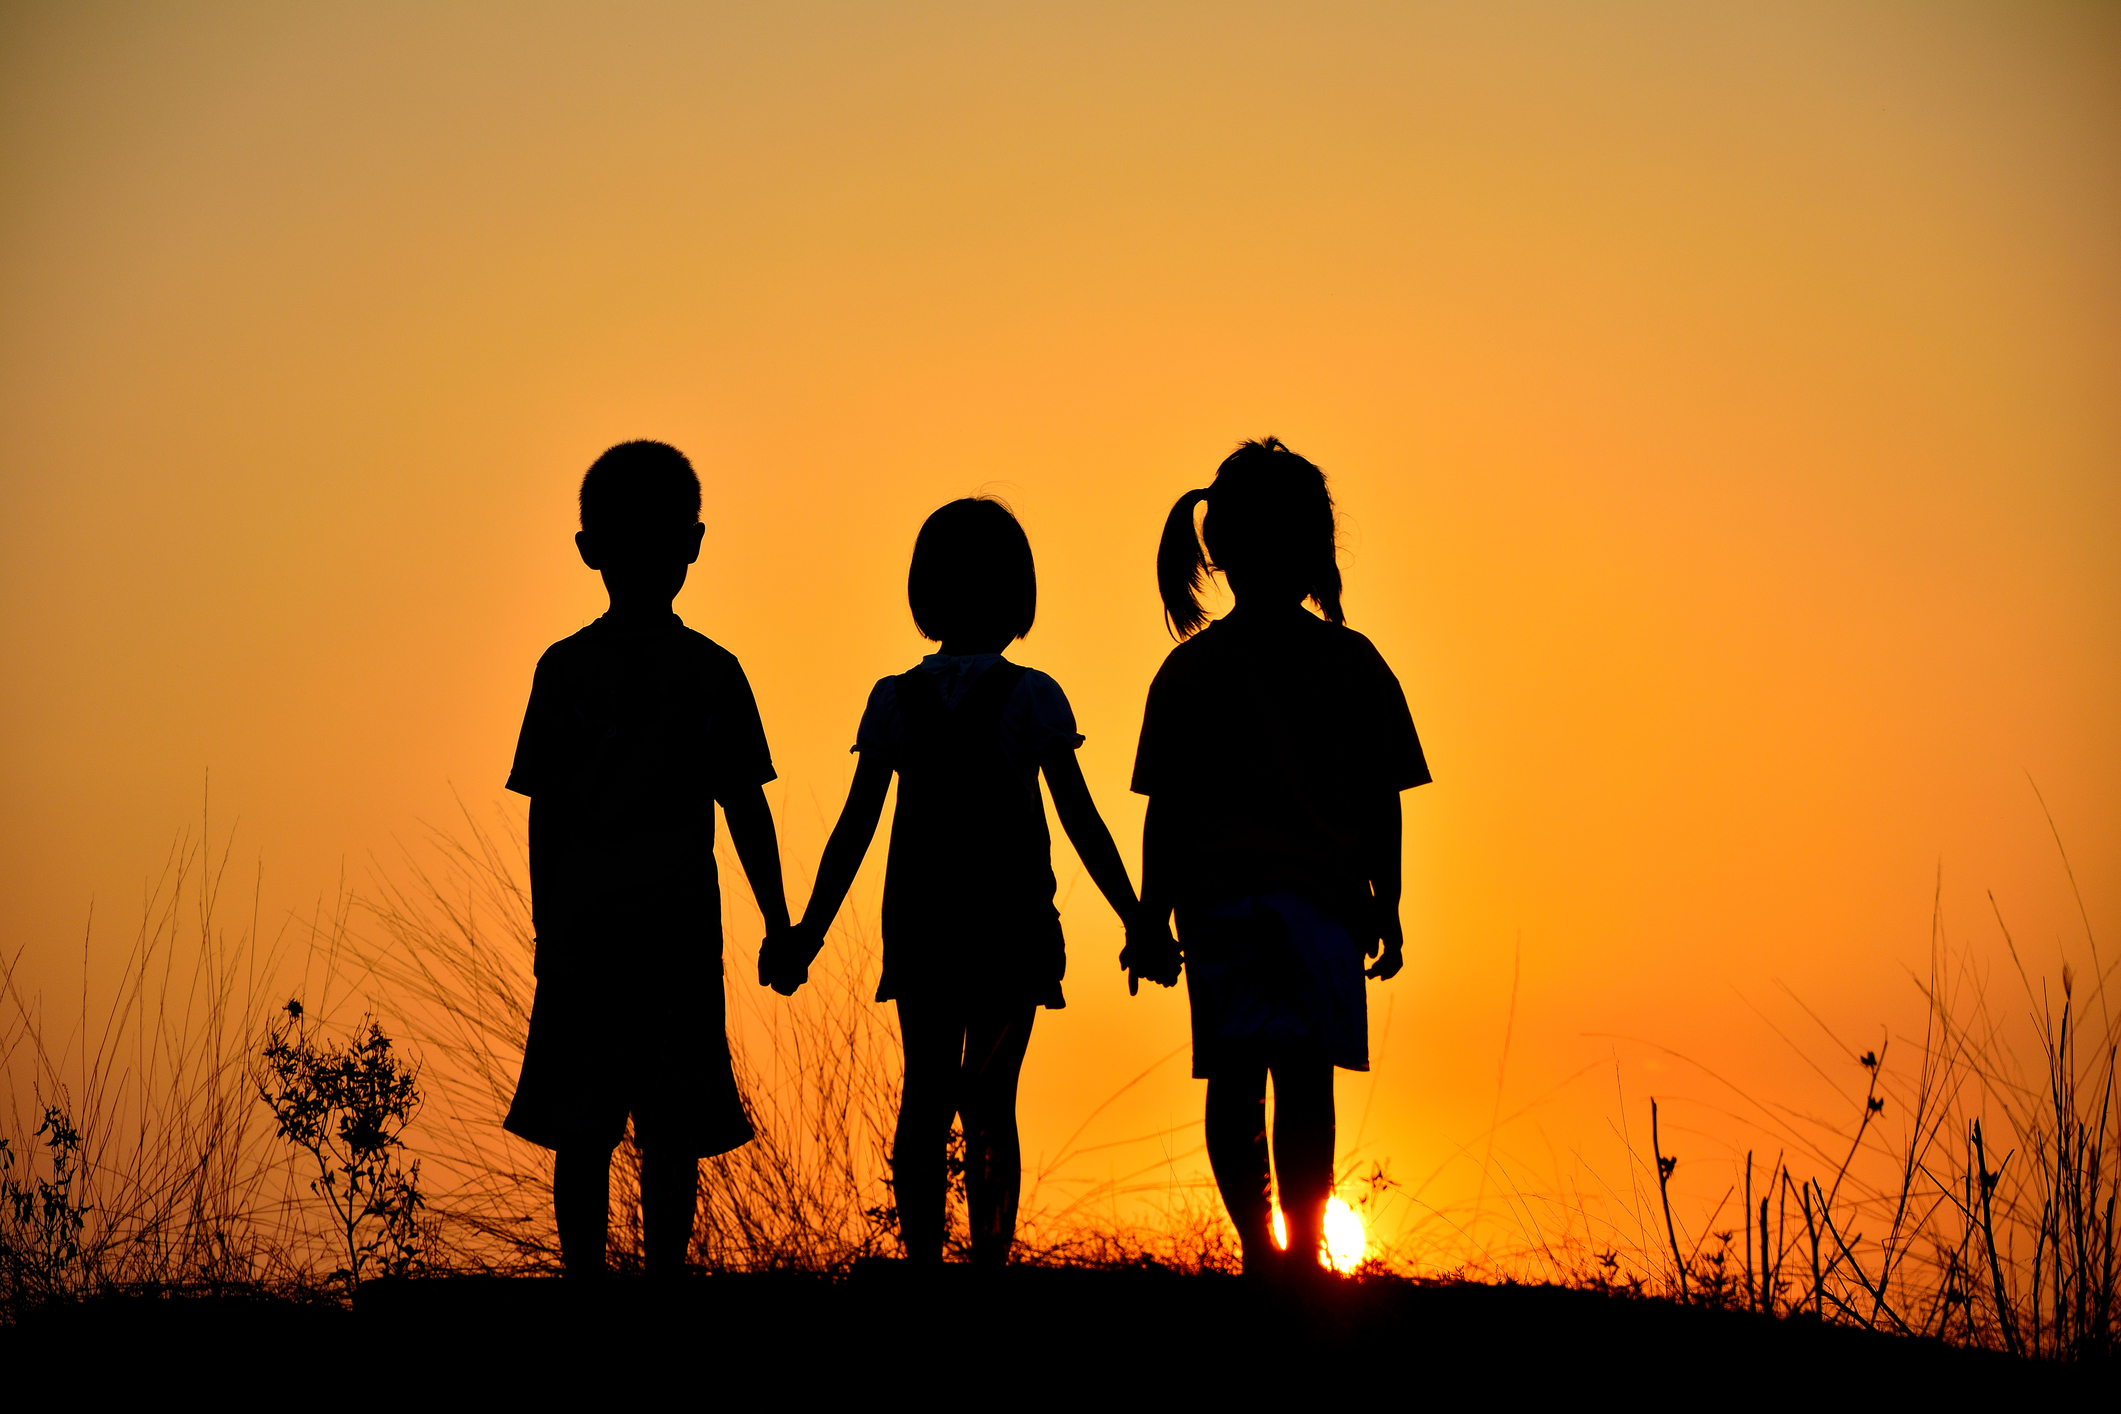 Happy Friendship Day Celebration - Check Out Splendid Images And Greetings Pictures